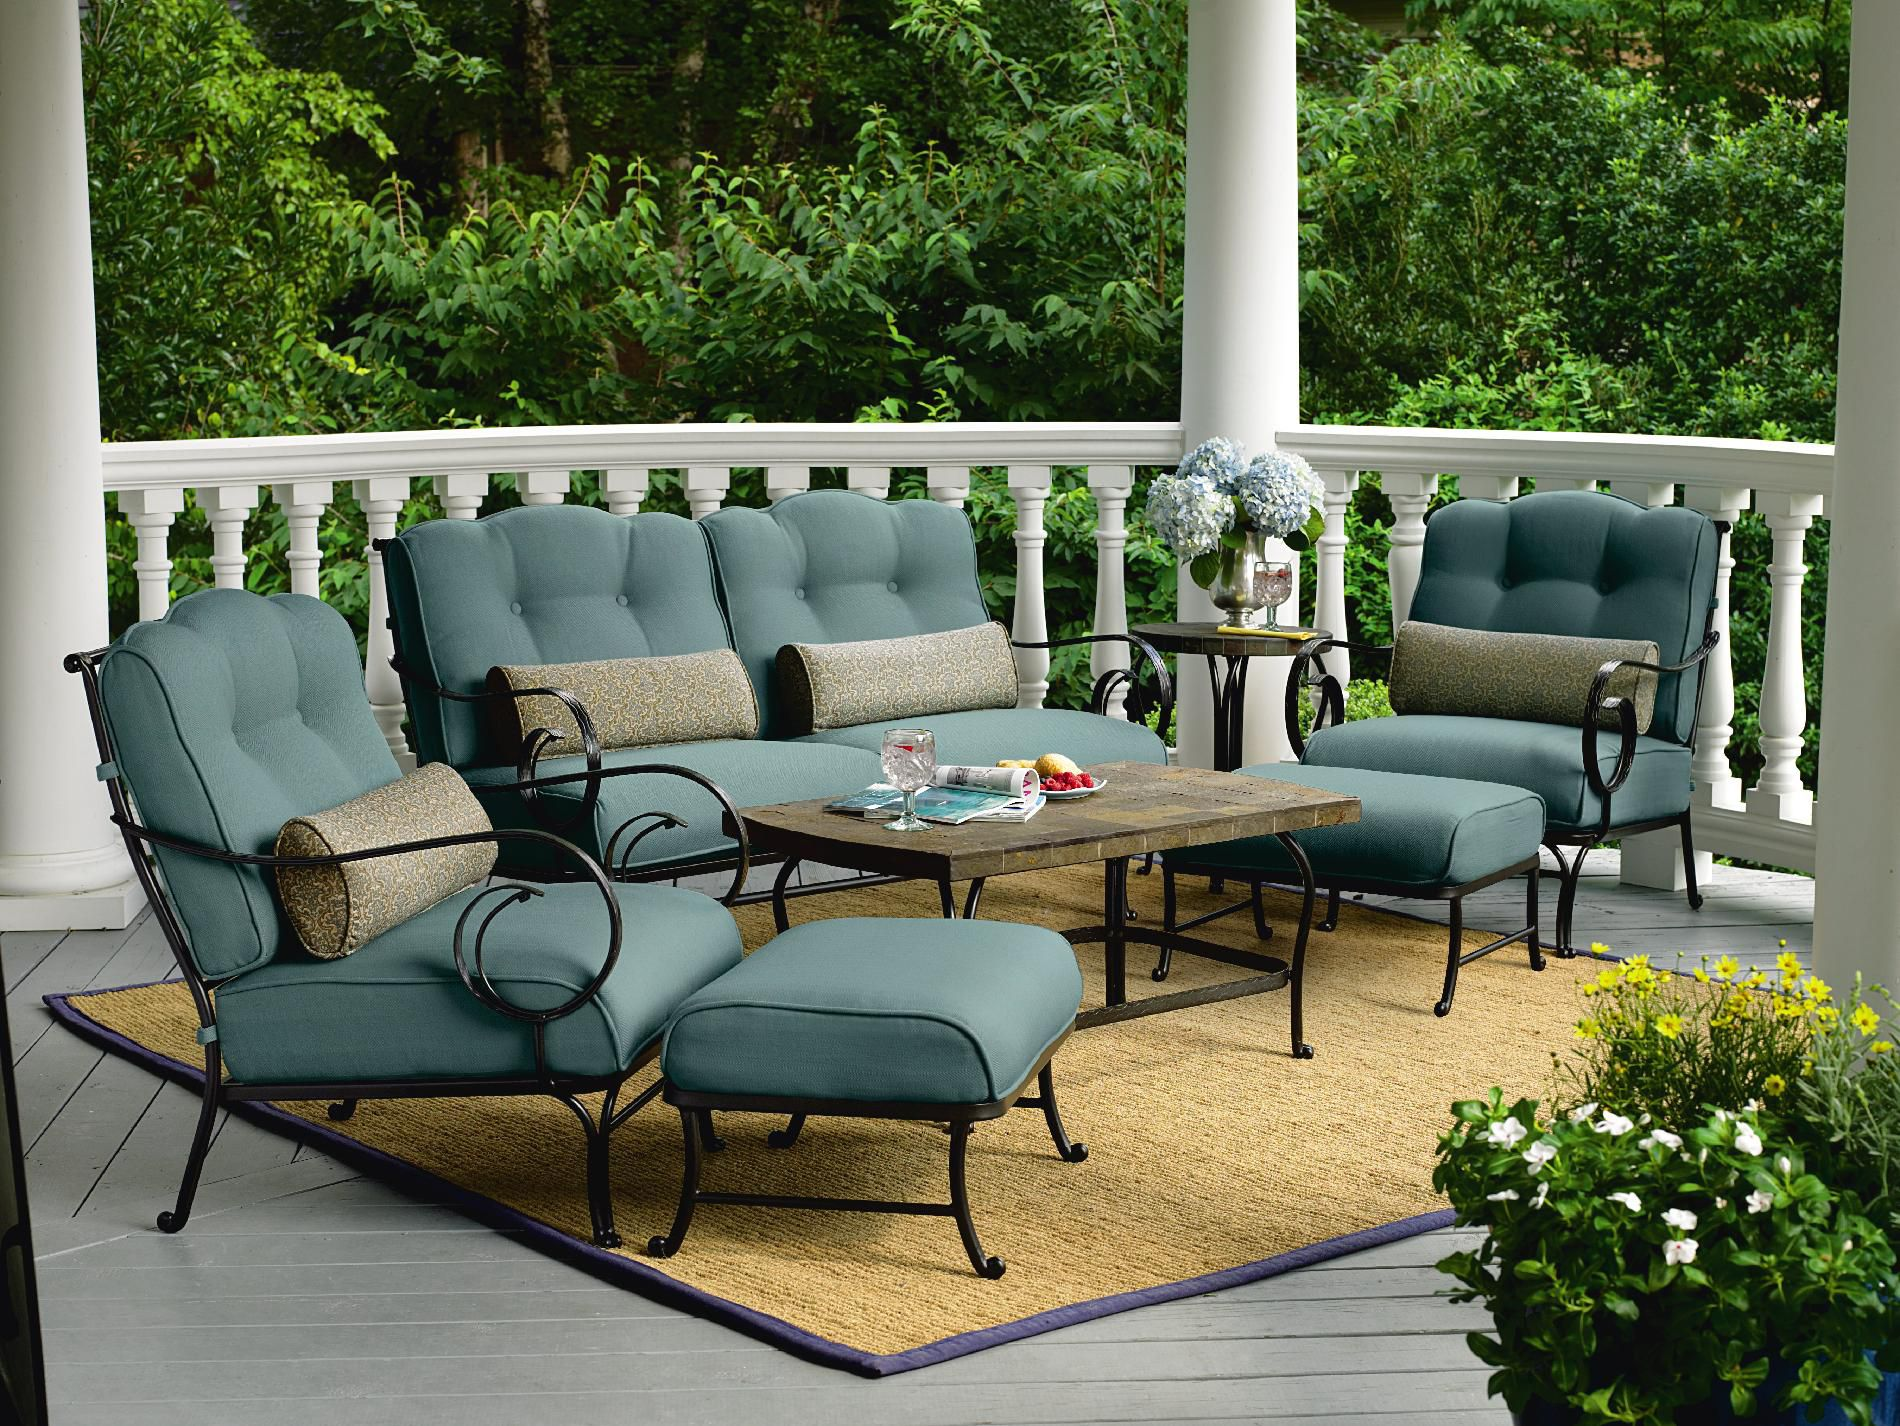 La-Z-Boy Outdoor Ashville 4 Pc. Seating Set *Limited Availability